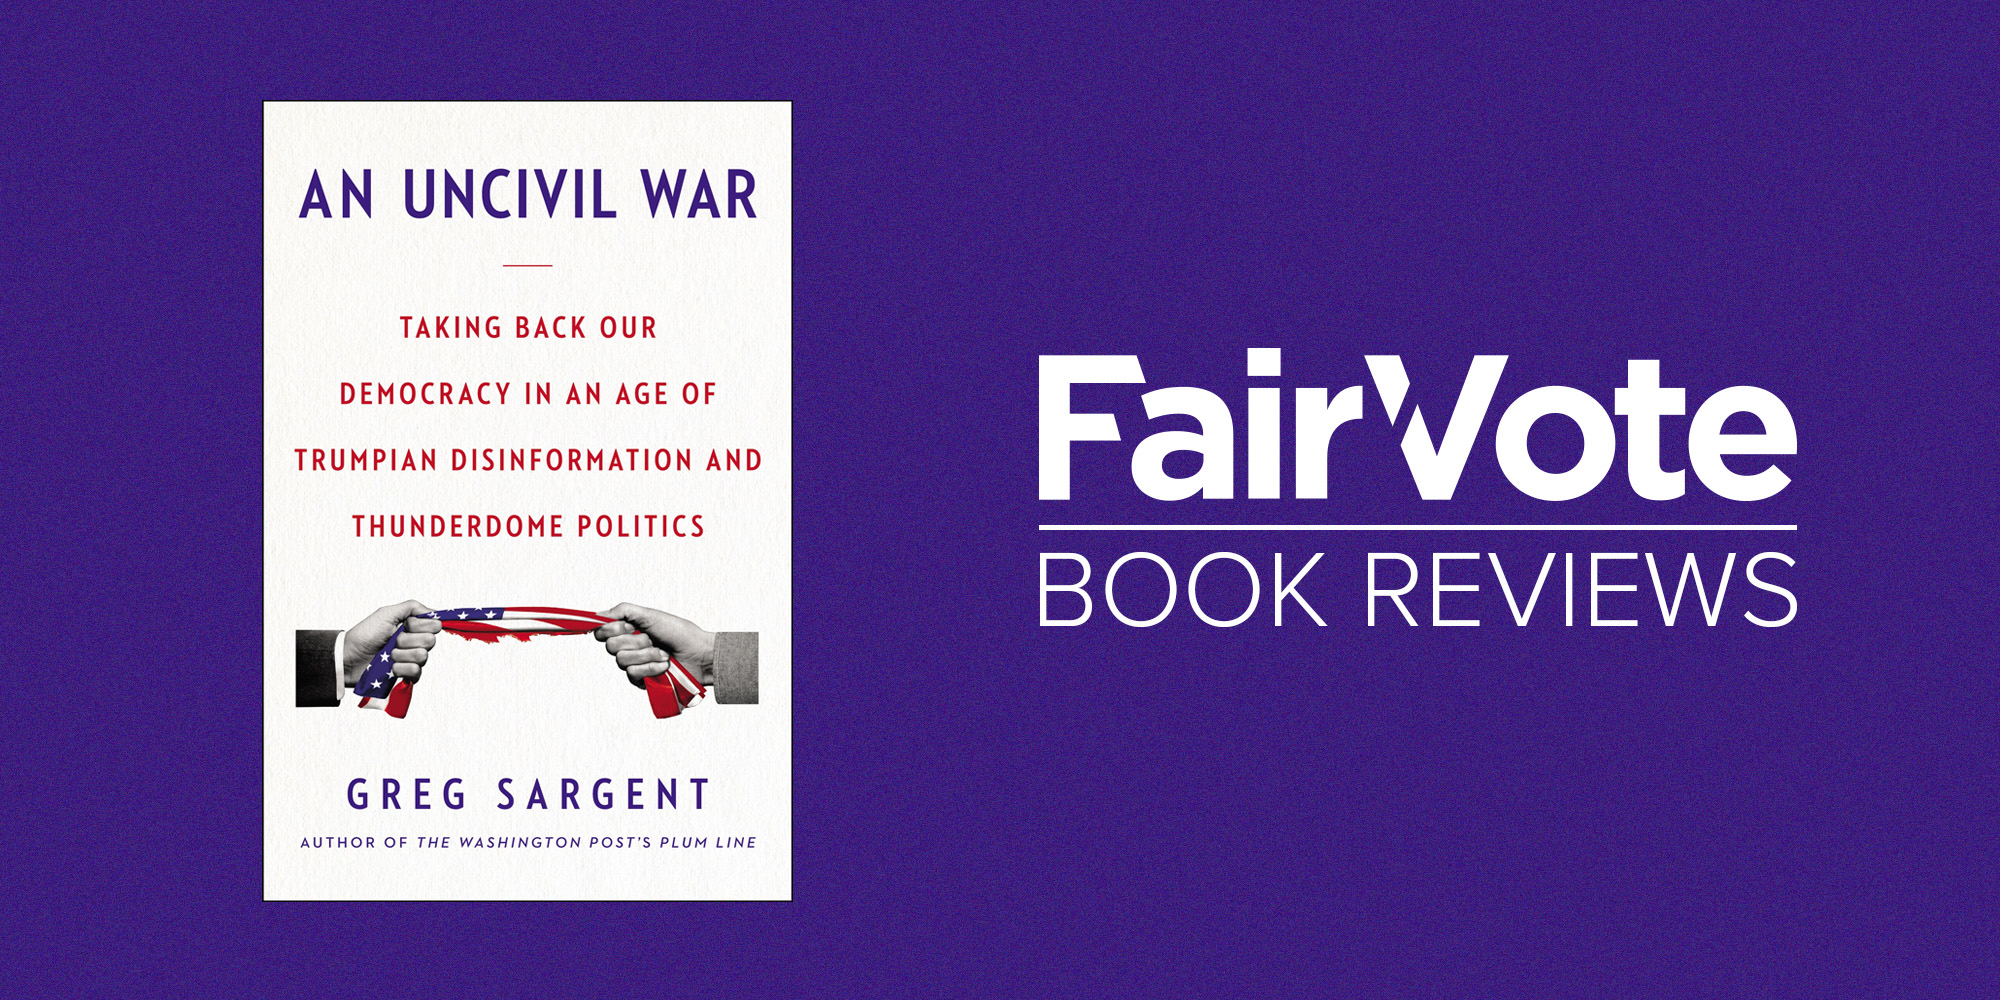 Book Review: An Uncivil War by Greg Sargent